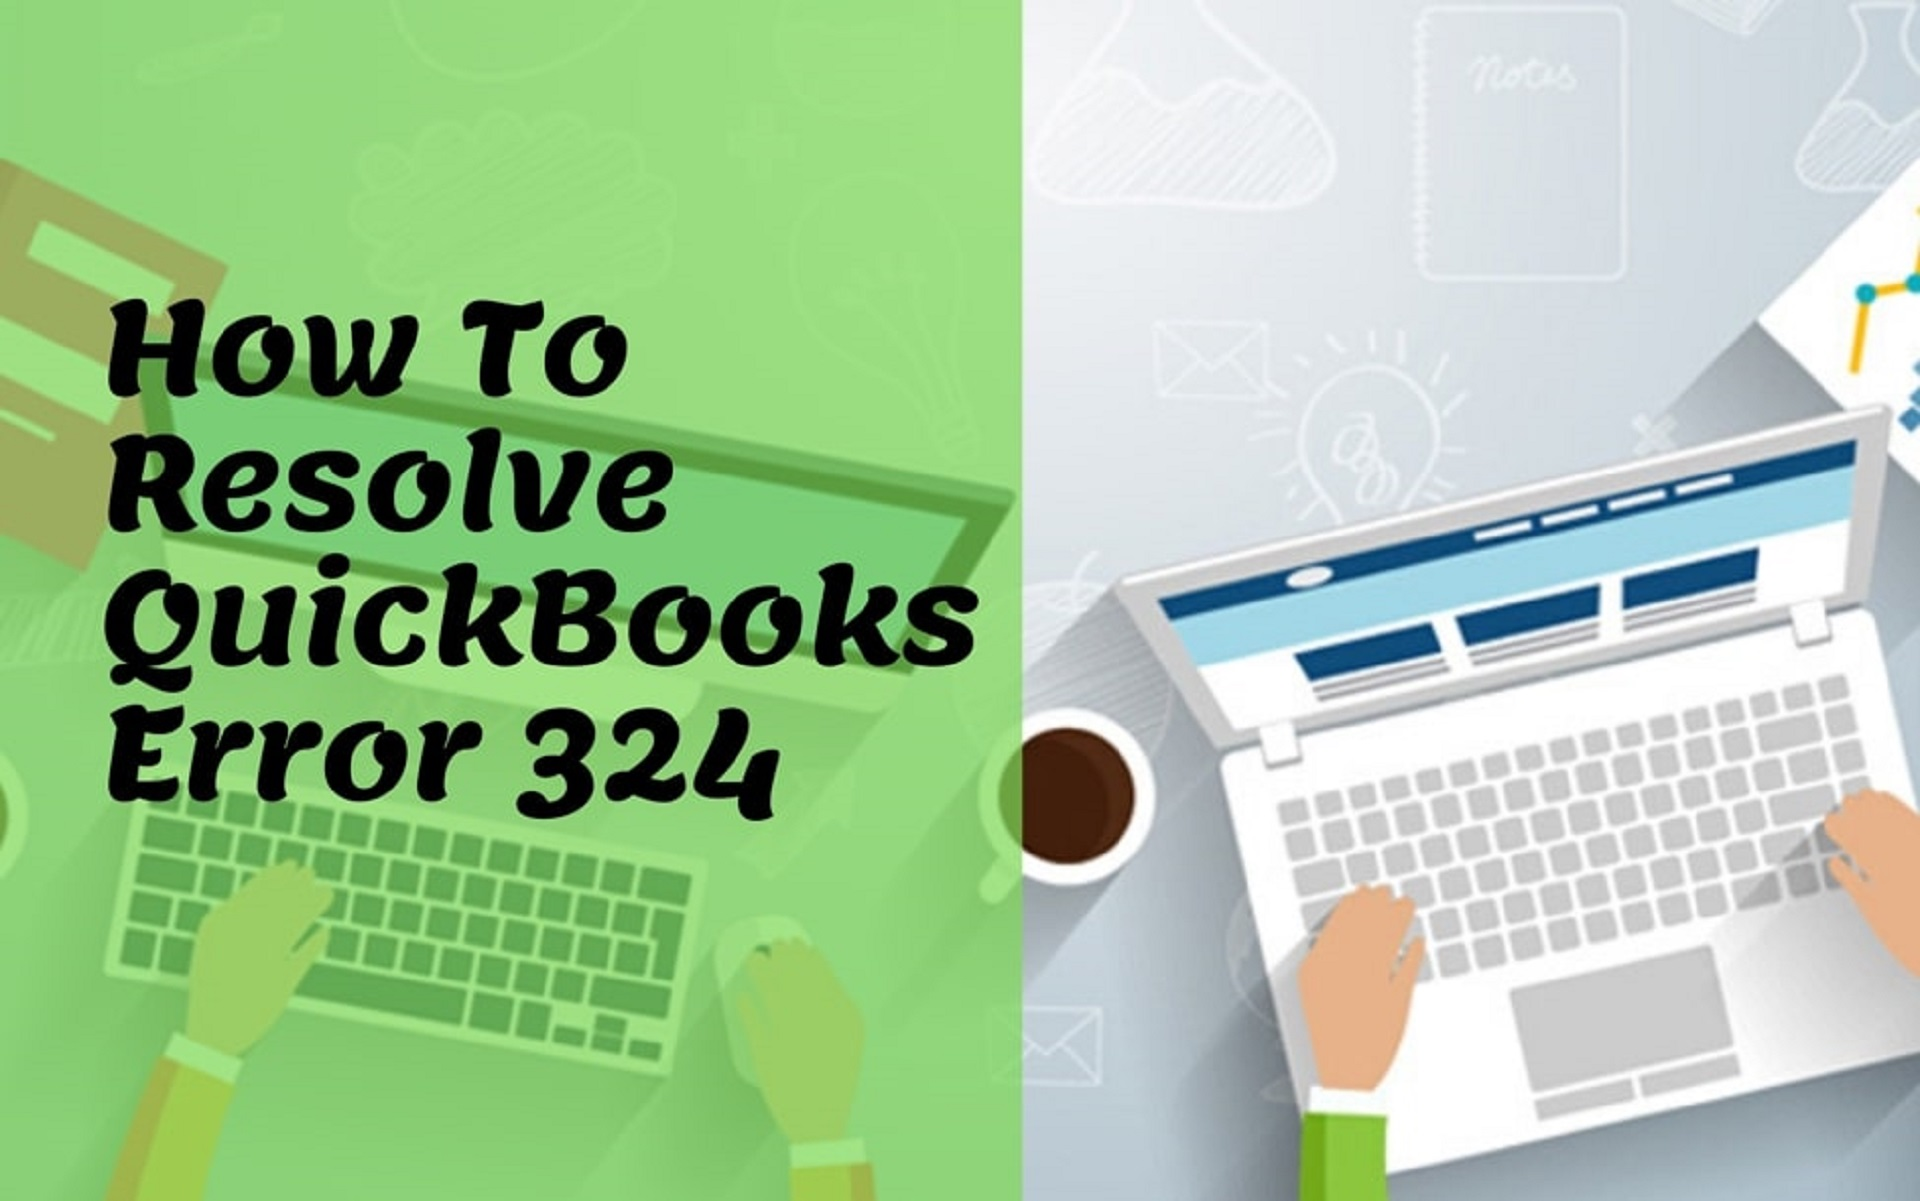 How Can I Fix  Error Code Quickbooks 324 [Resolved]